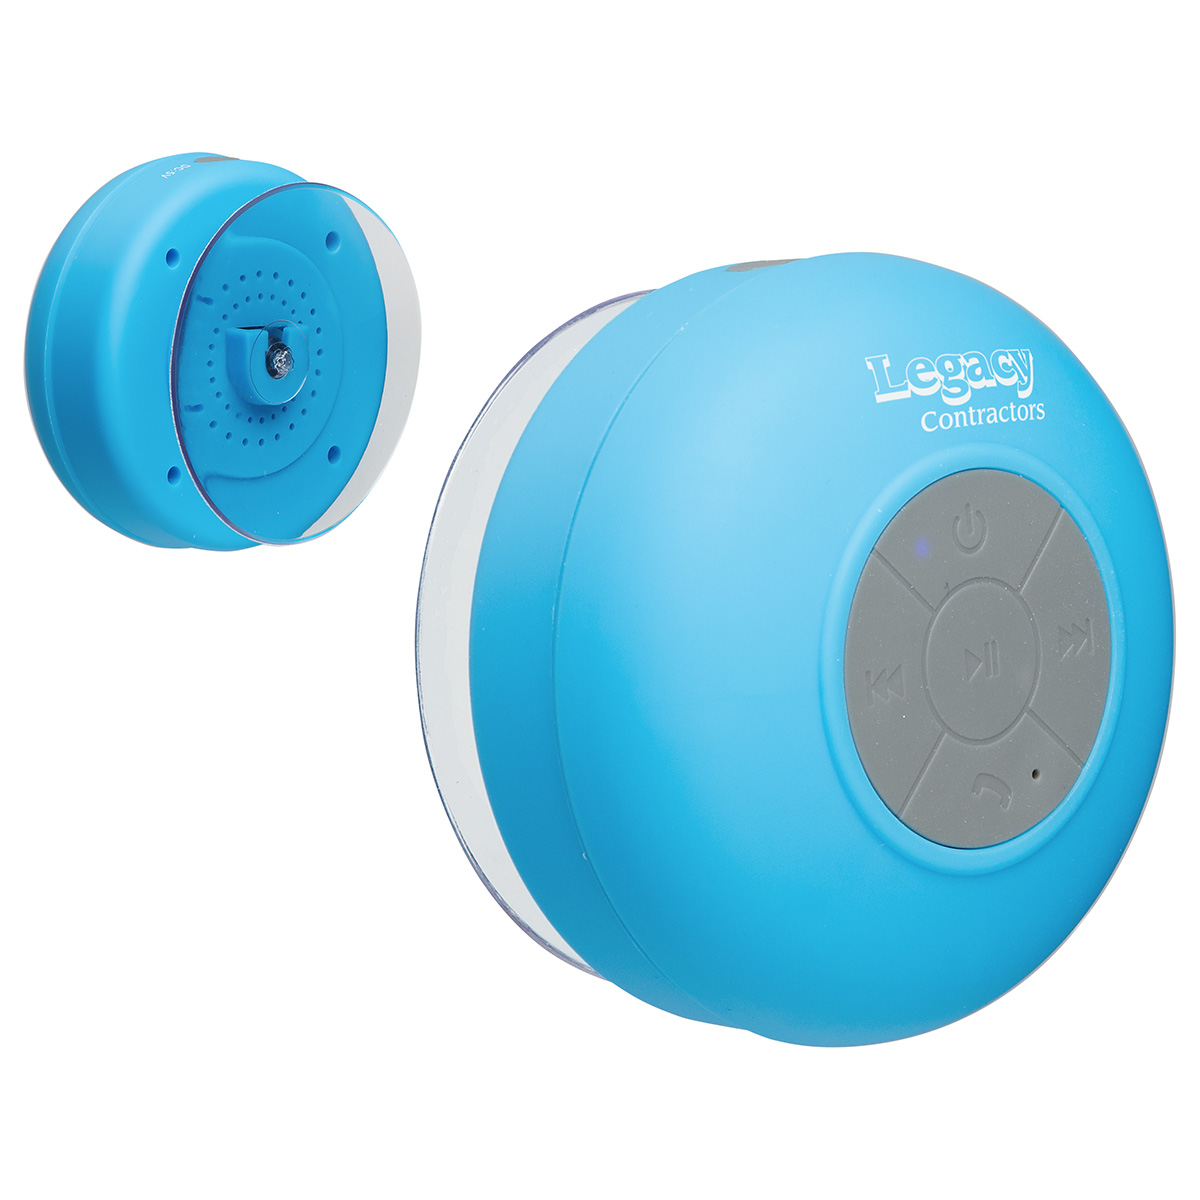 Water Resistant Wireless Speaker, WSP-WR15, 1 Colour Imprint